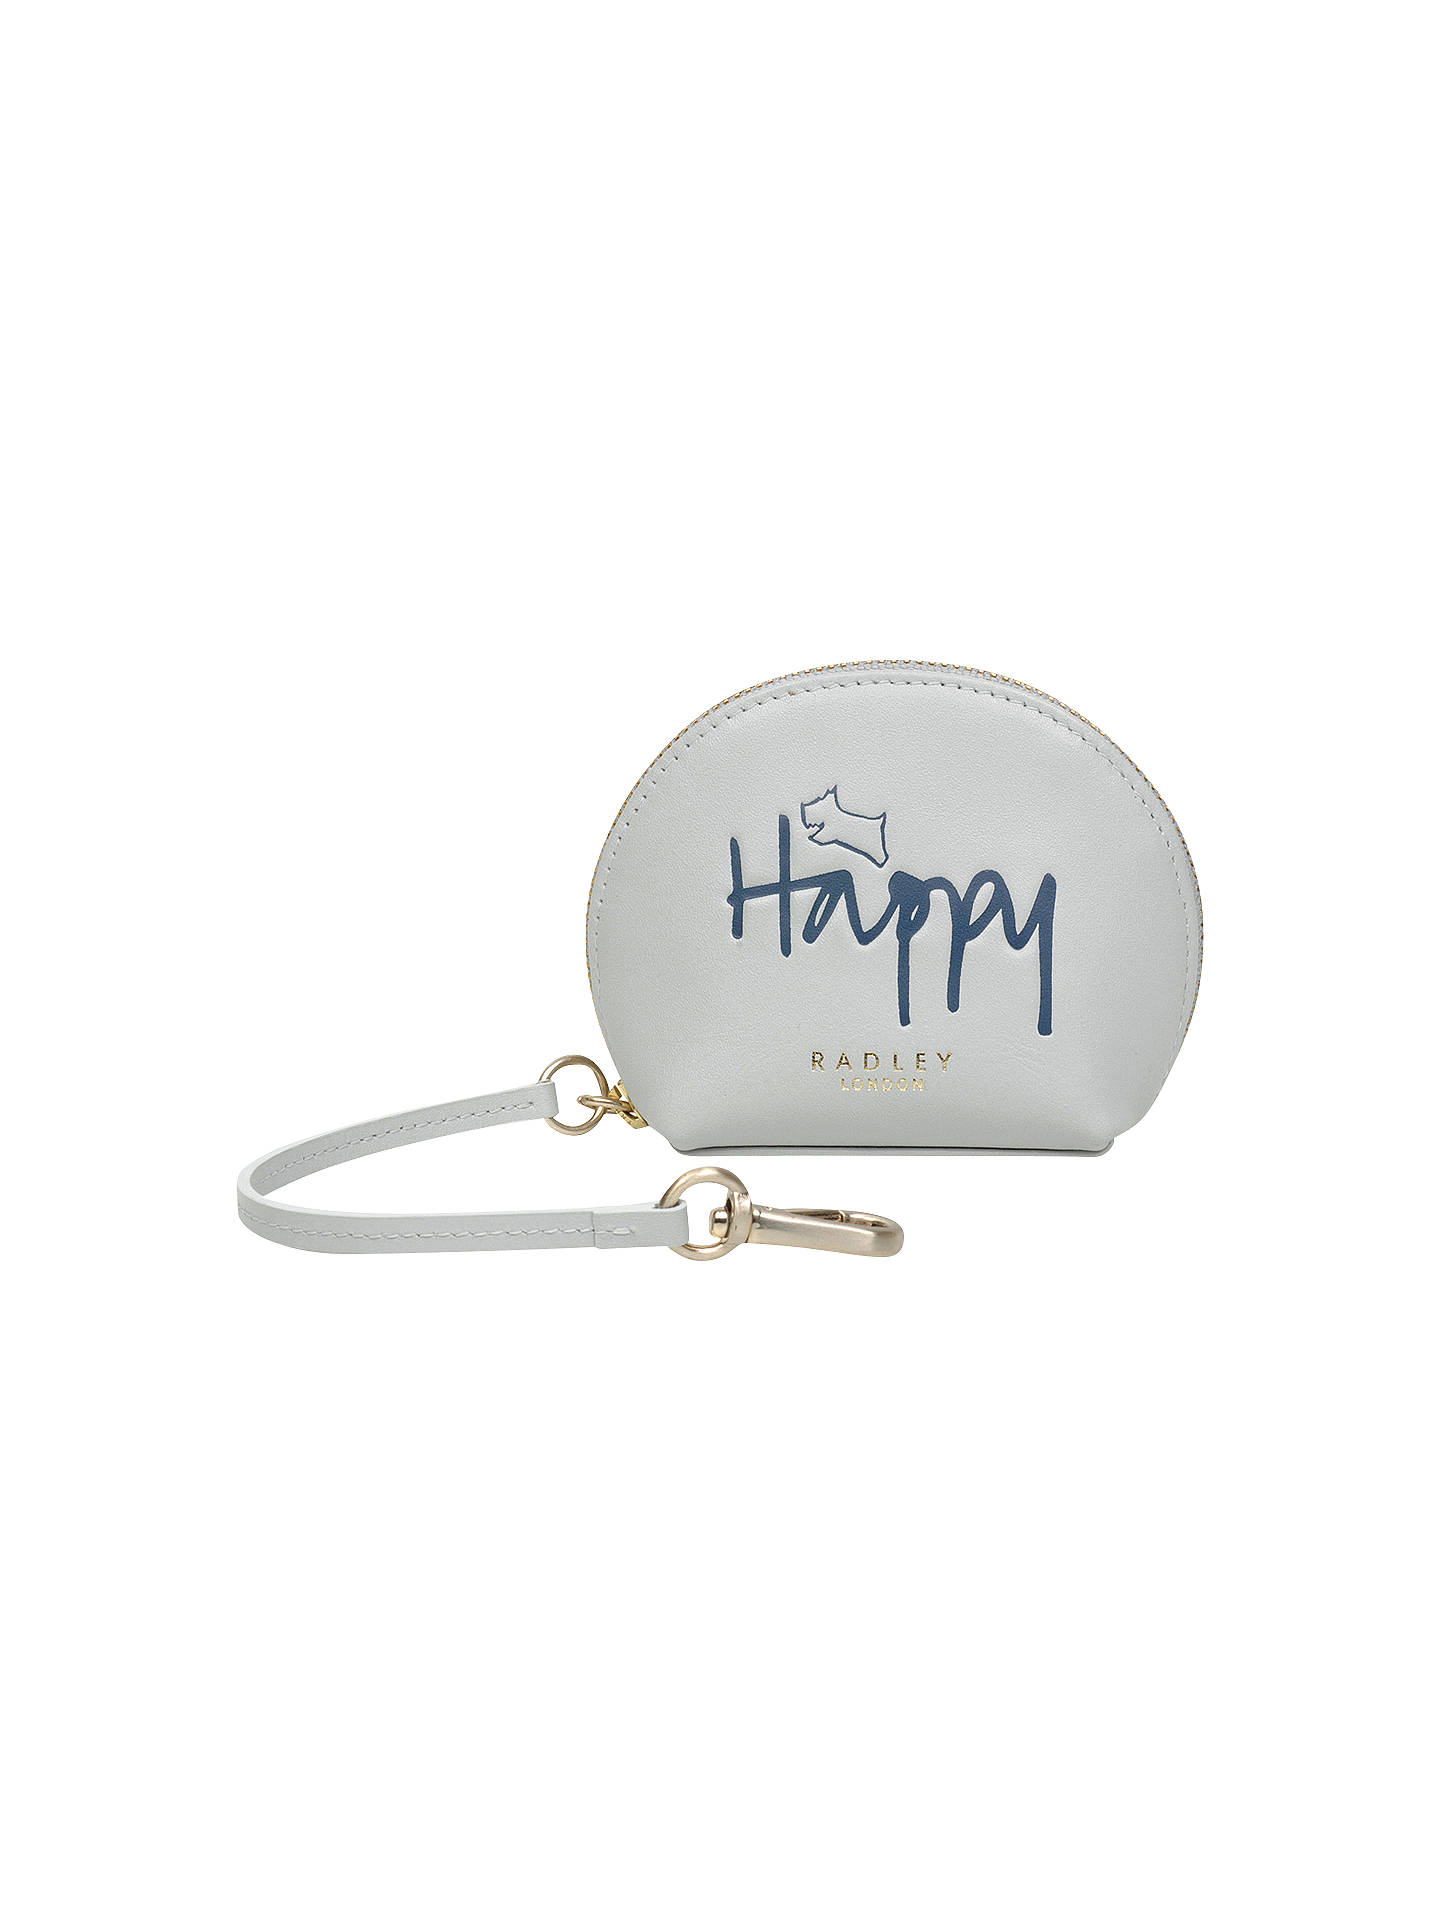 BuyRadley Happy Leather Bag Charm Coin Purse, Pond Online at johnlewis.com